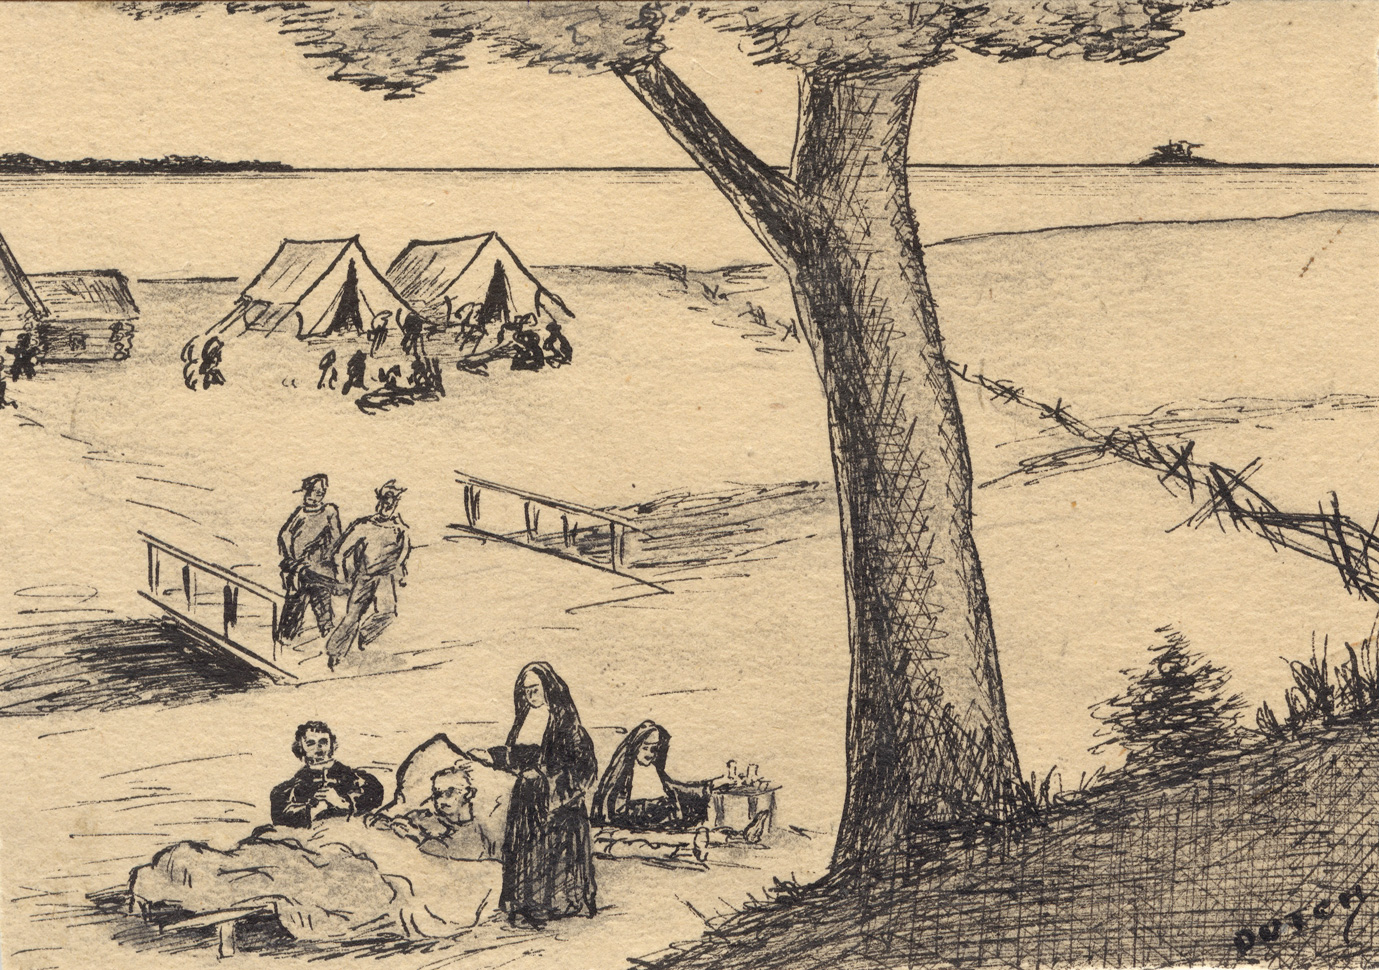 Nun in habit leaning over sick man in bed in open air, priest kneeling at his side, a second nun sitting at a small table preparing medicine, a bridge, tents, and sheds in the background with other people on the shoreline of a large lake. Large tree in foreground.